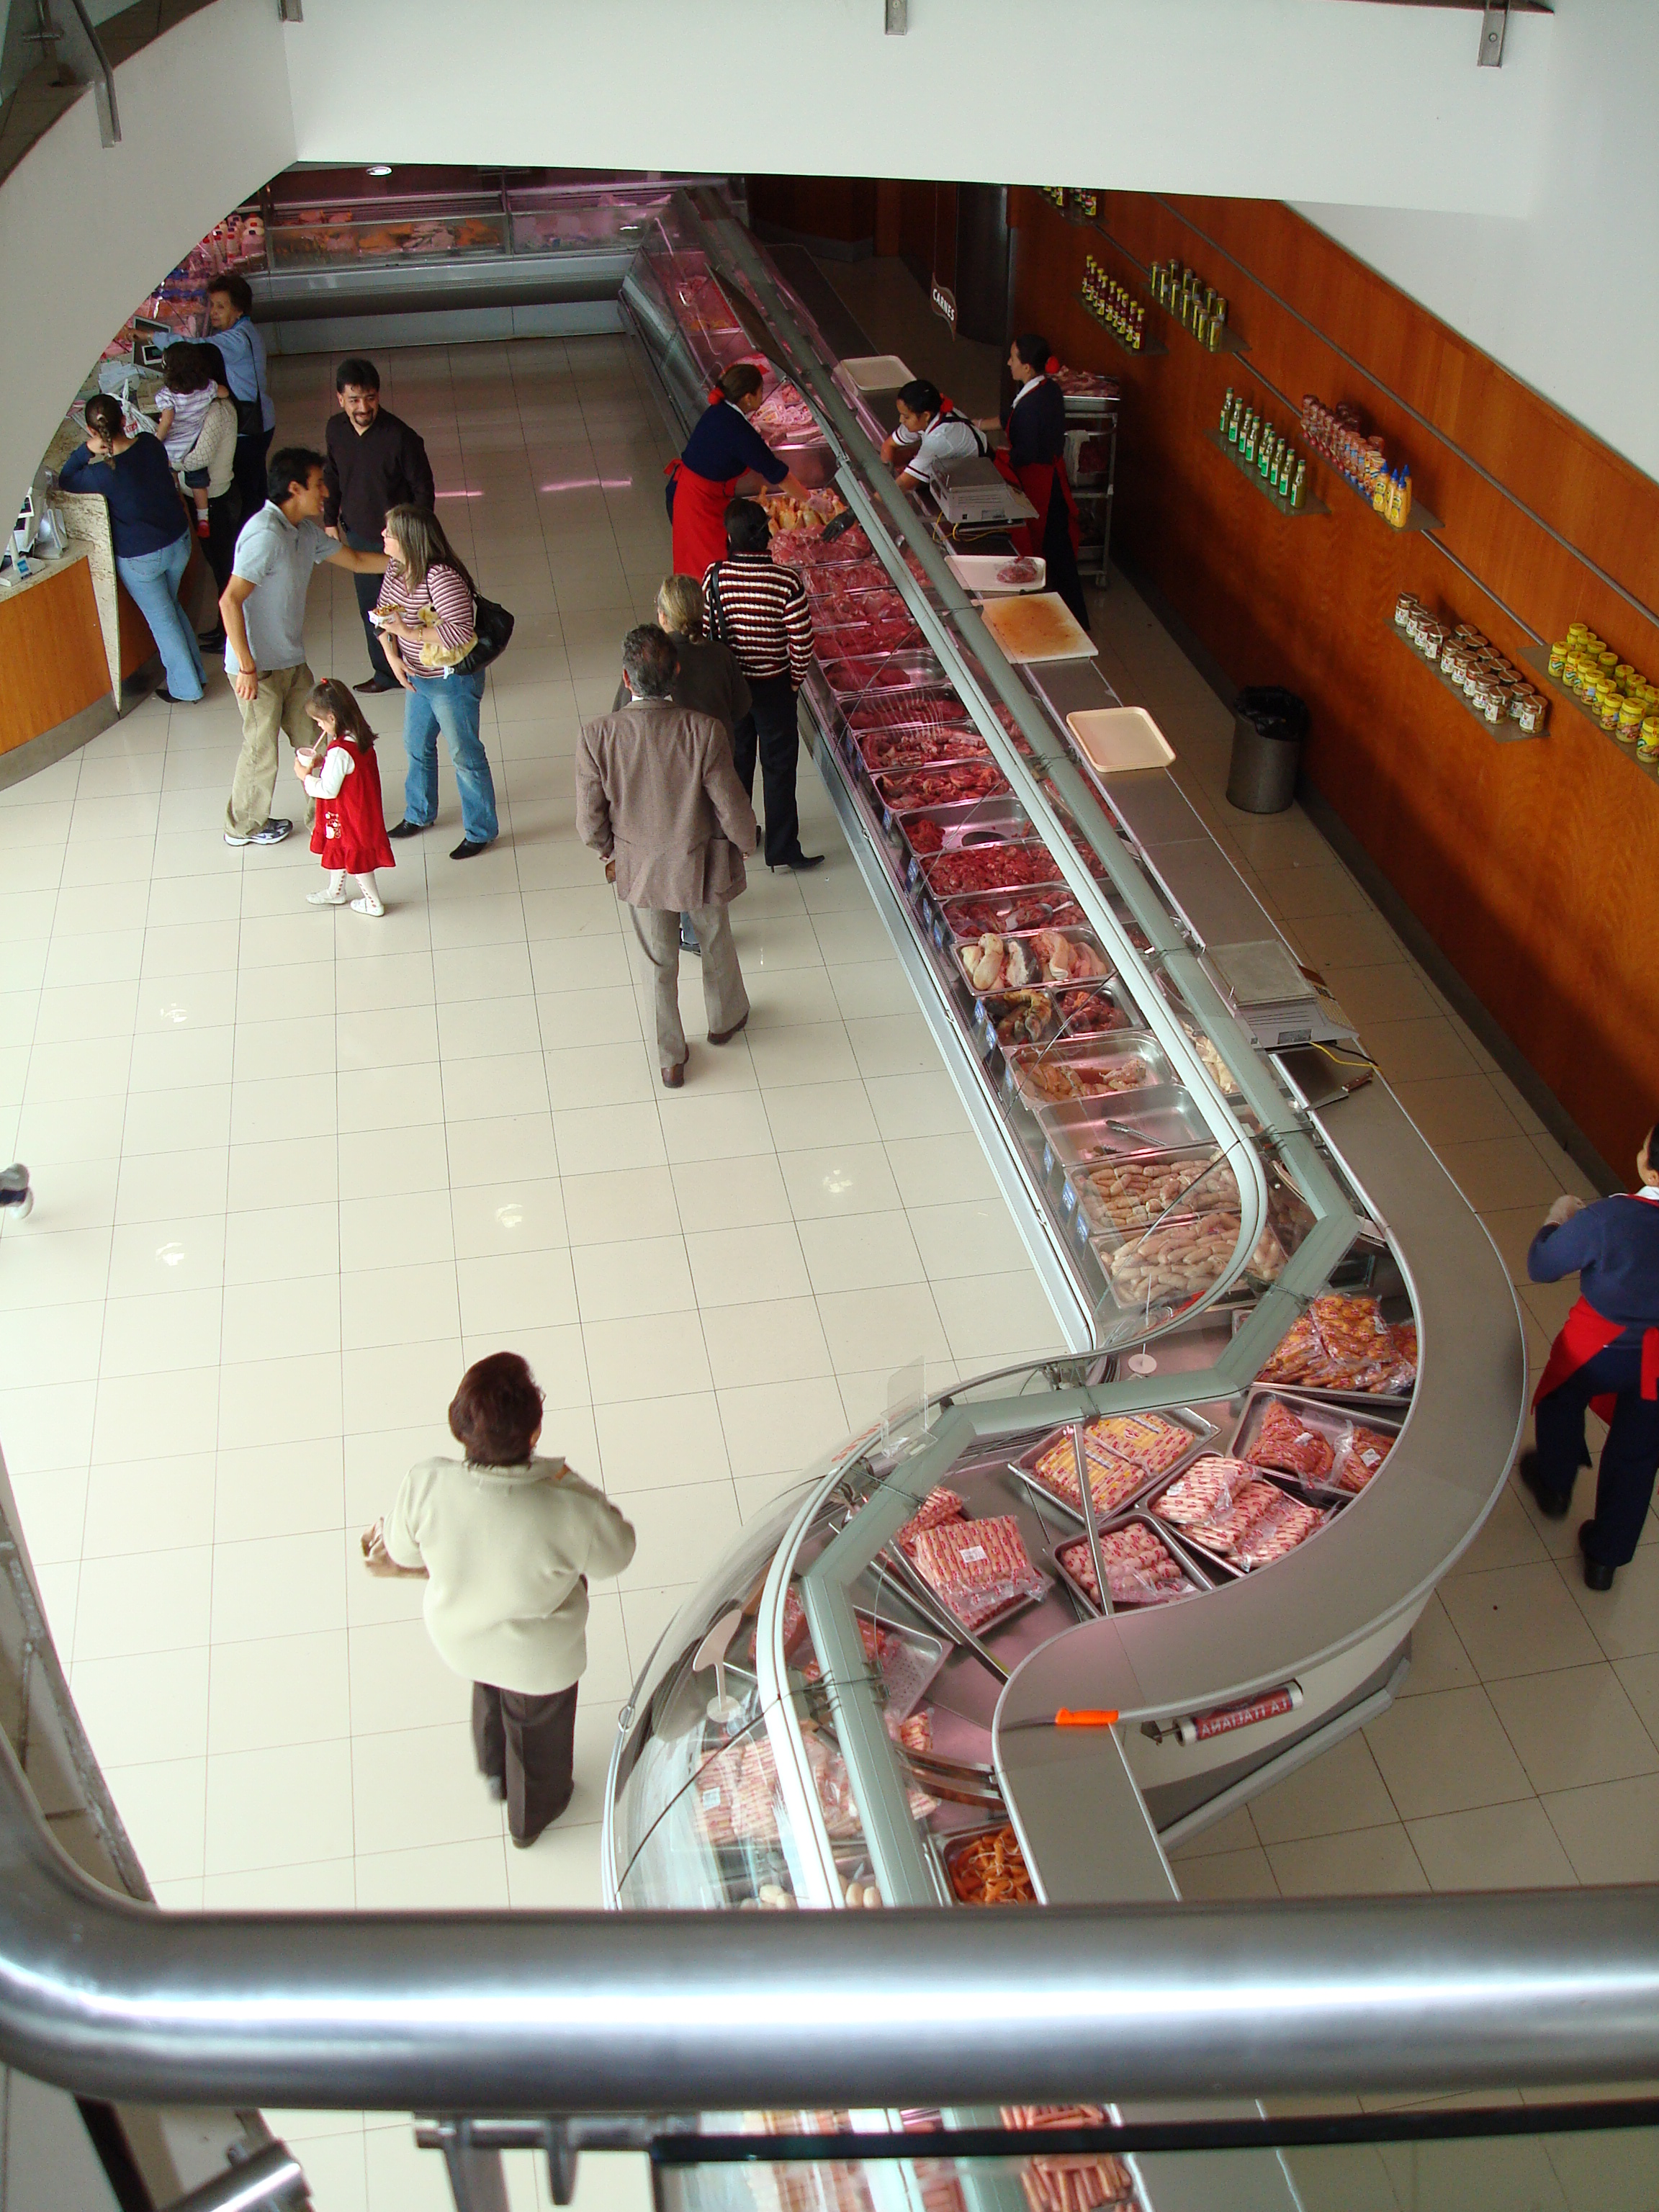 Meat markets are super clean and very well stocked